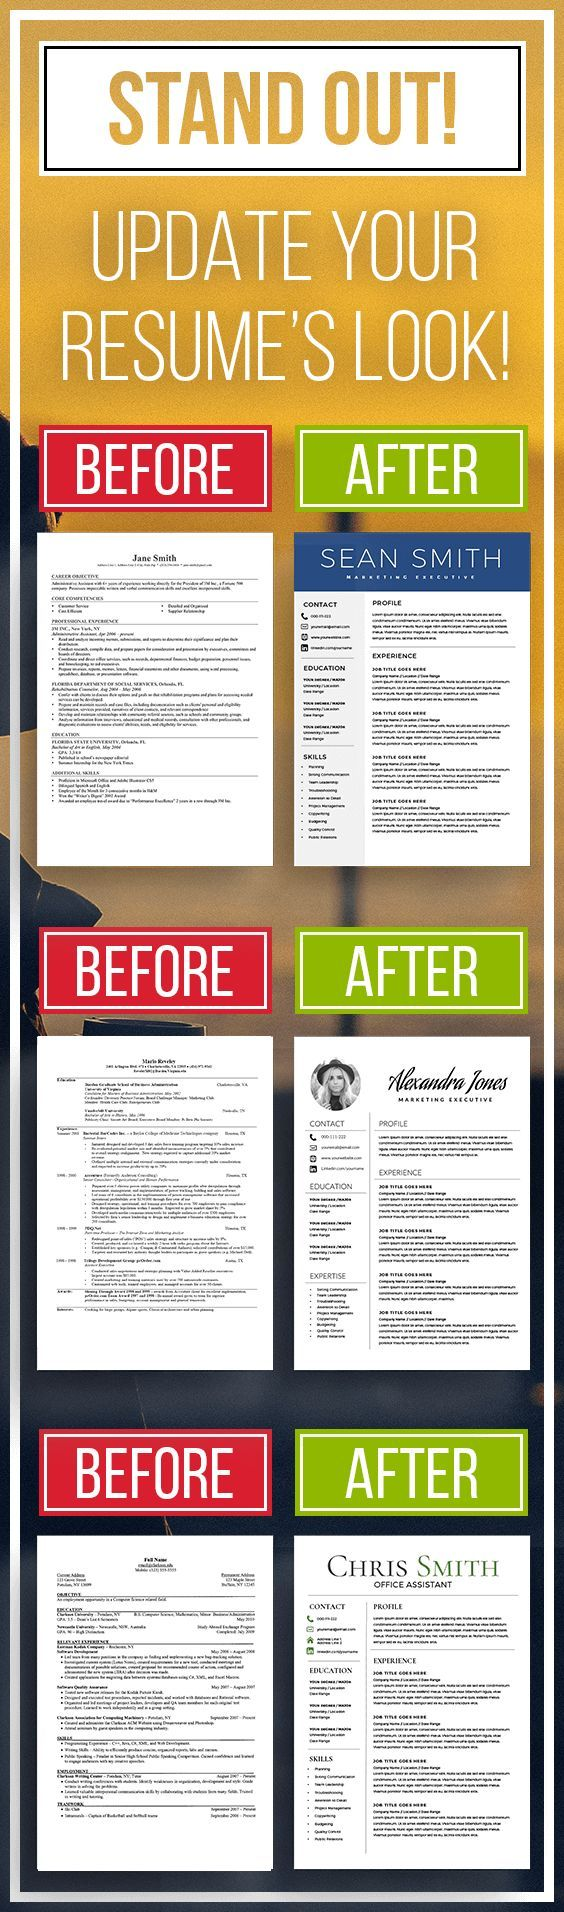 Top Selling Resume Templates - STAND OUT!